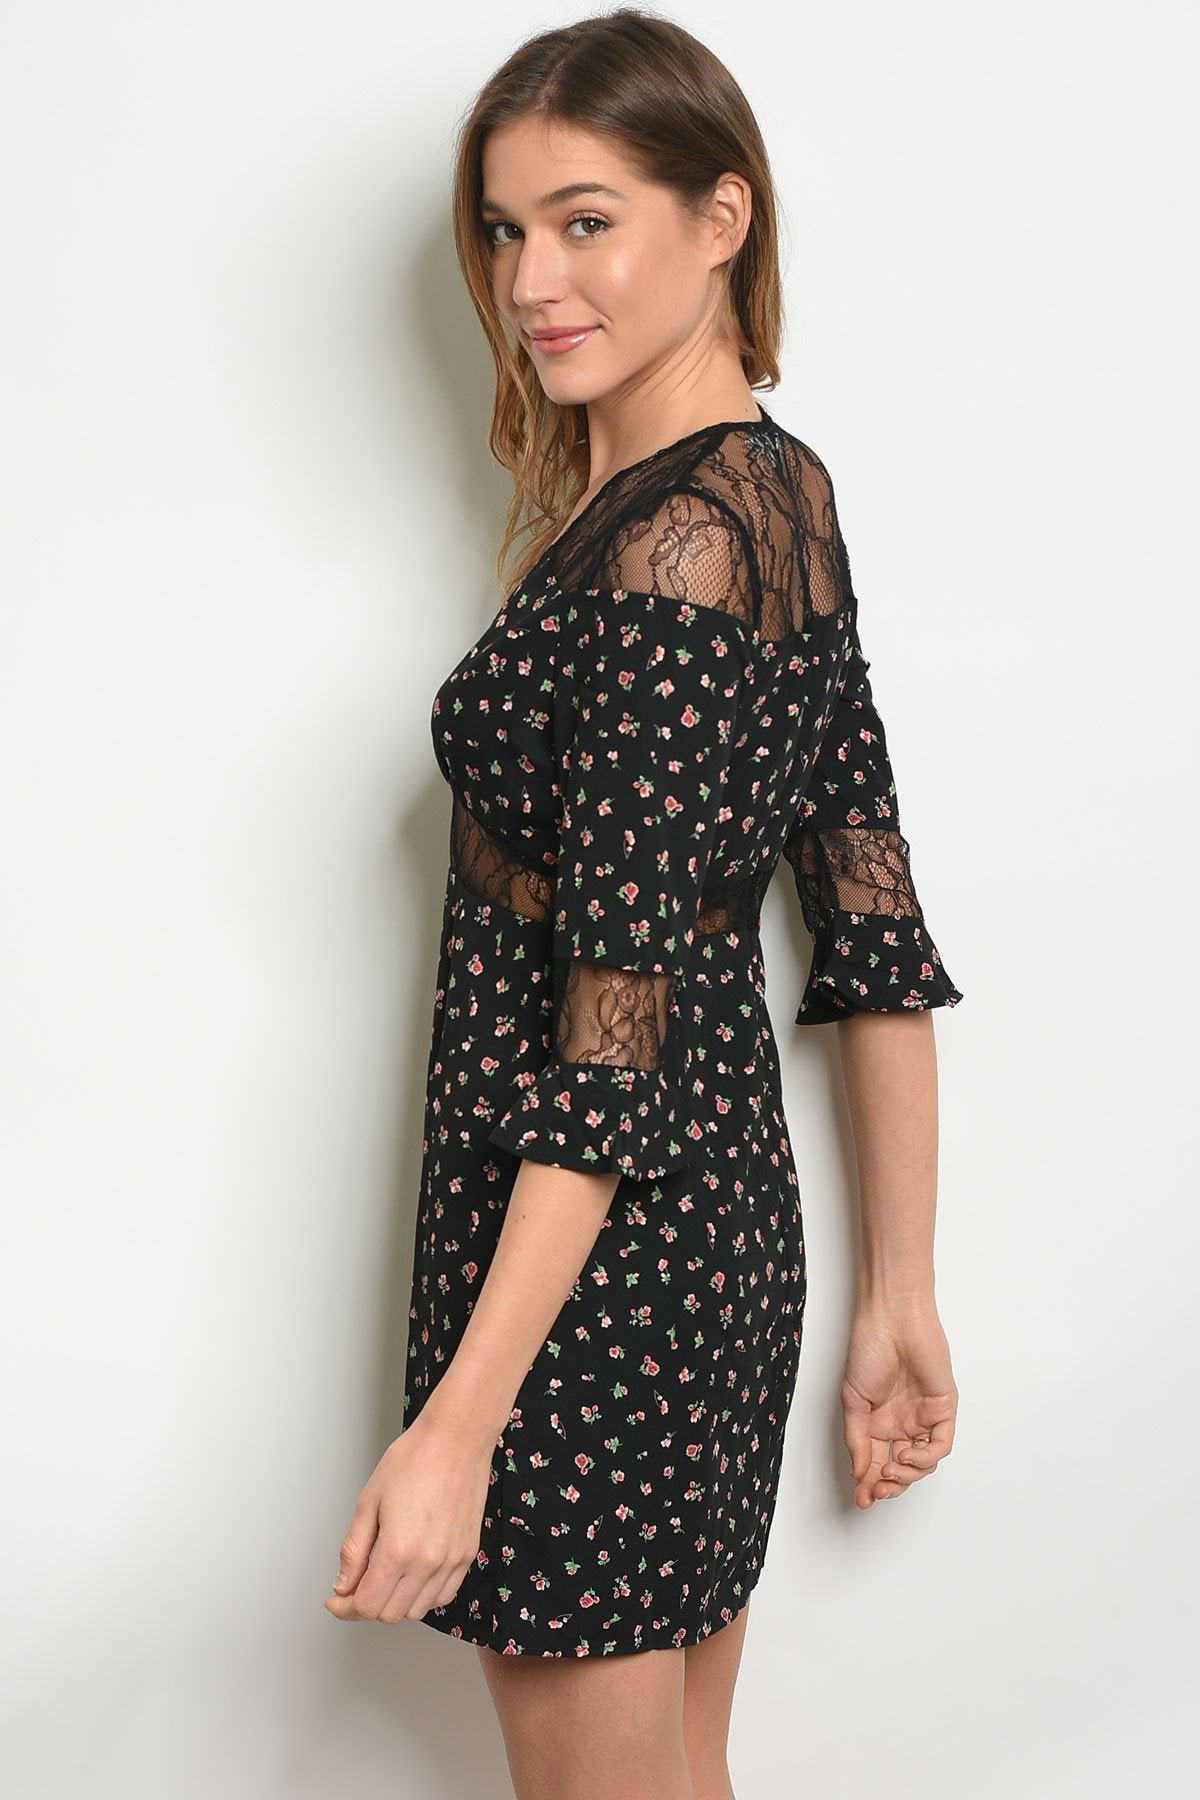 Womens Floral Black Dress - BrandsGuru